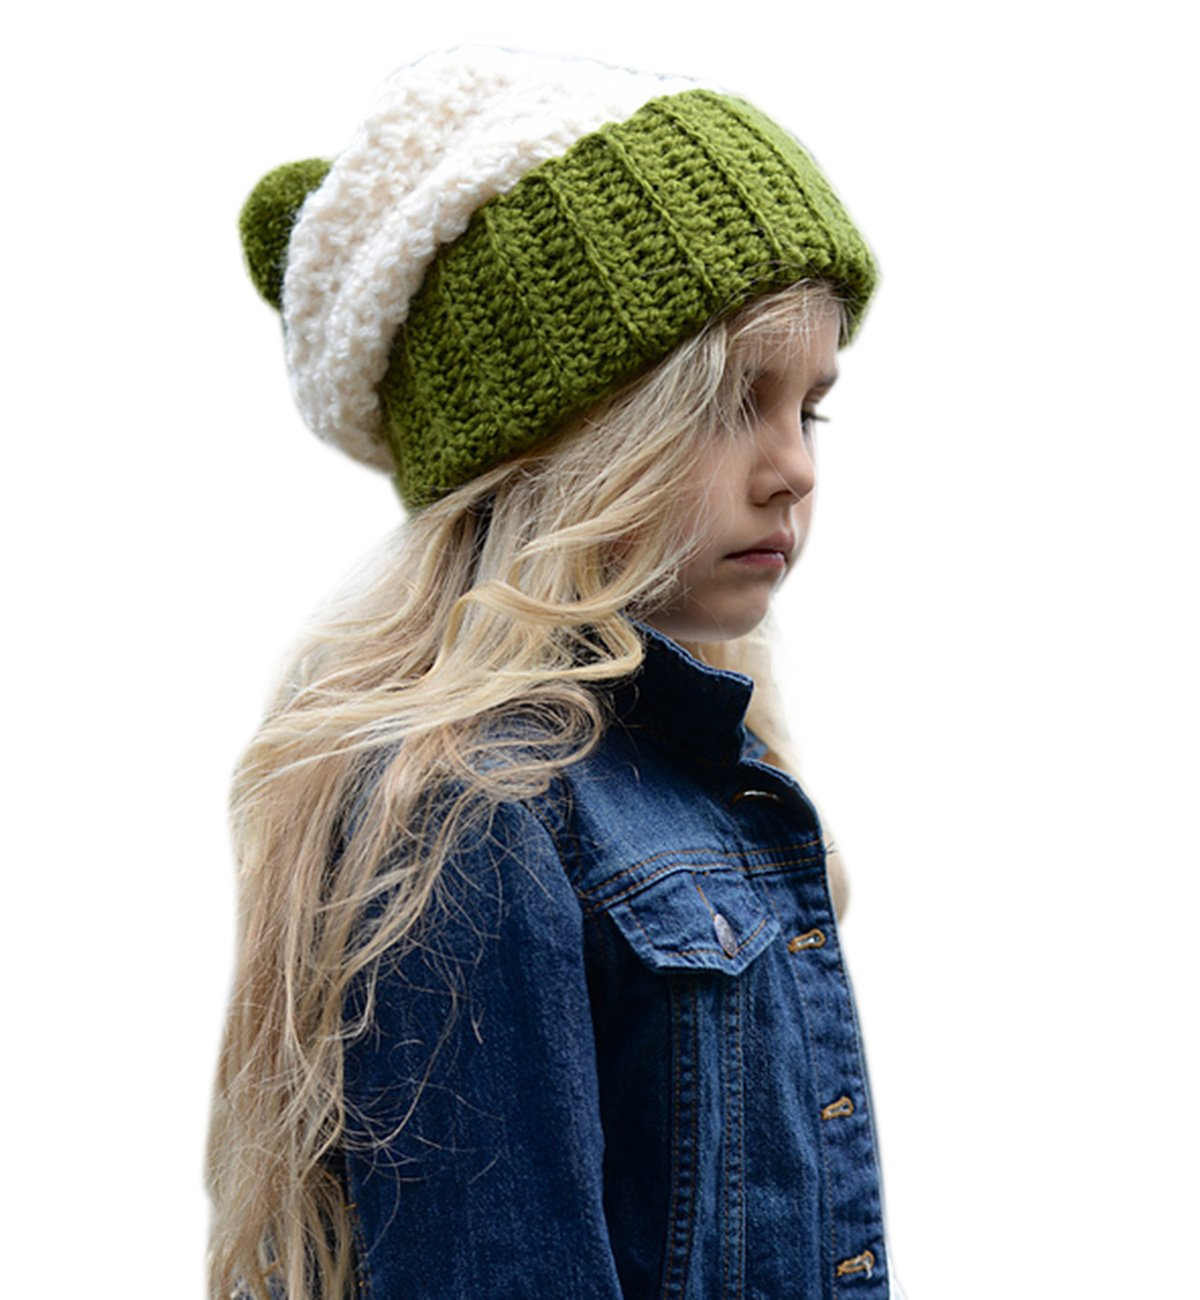 Sumolux Girls Knitted Baggy Slouchy Thick Winter Beanie Hat Cuff Beanie Warm Cap for Kids Autumn Winter